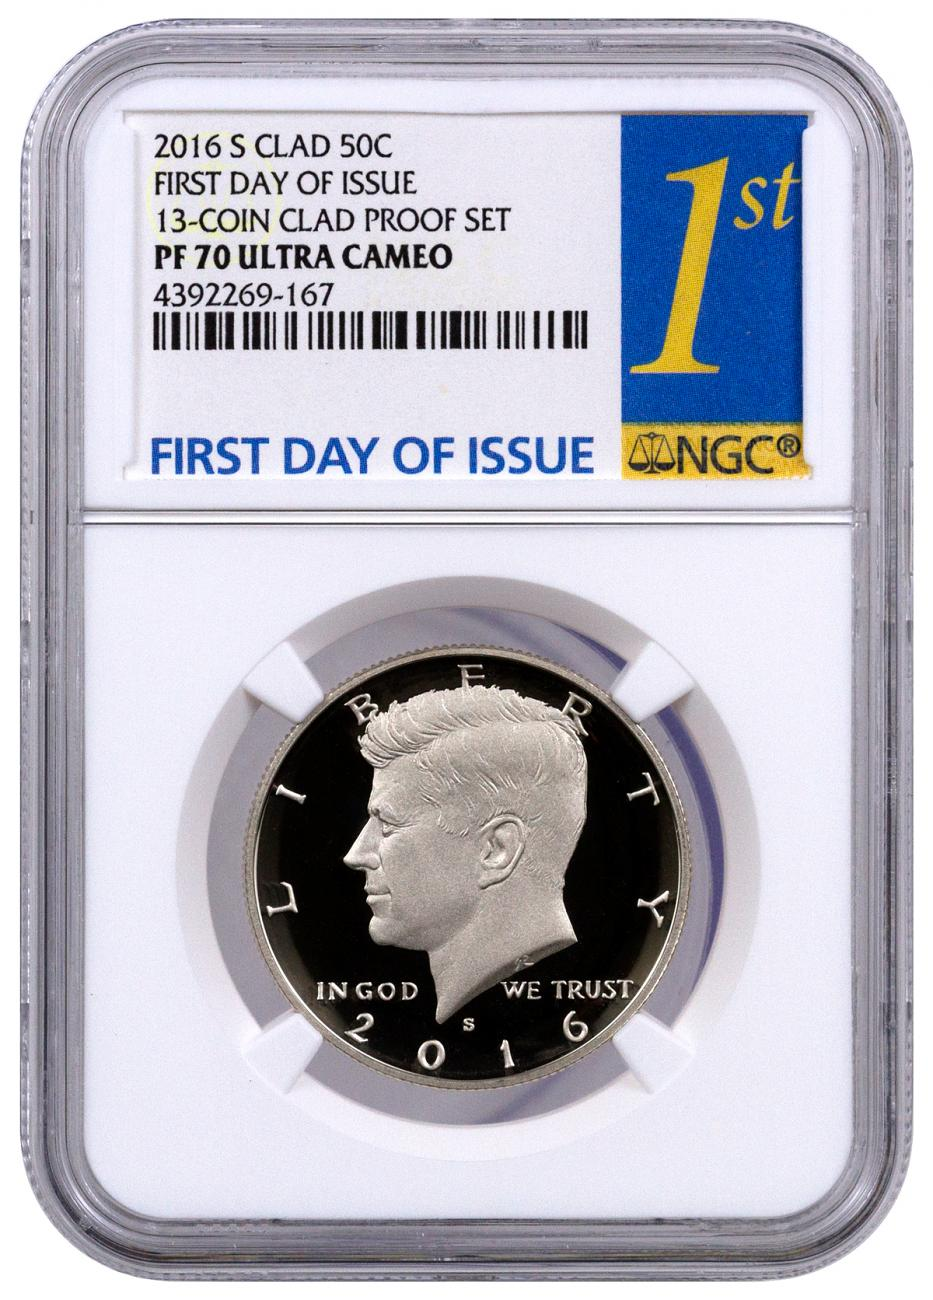 2016-S Proof Clad Kennedy Half Dollar - NGC PF70 UC (First Day of Issue Label)